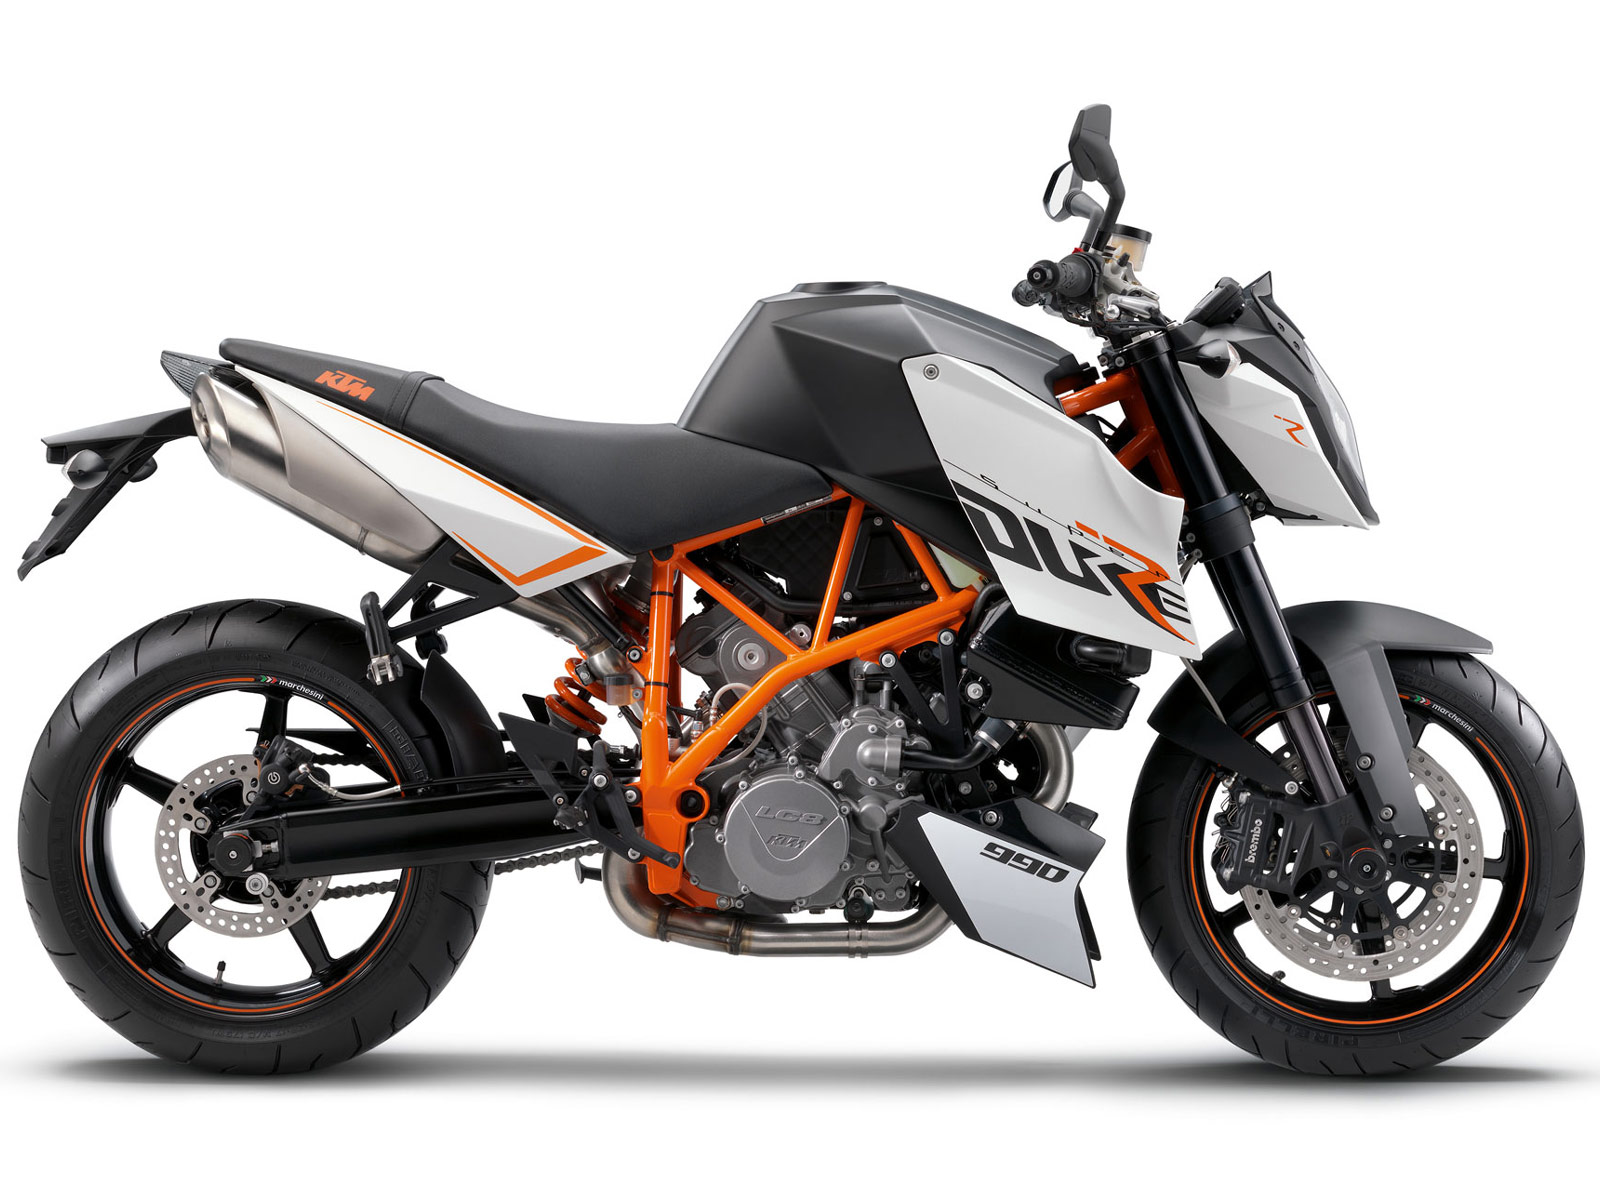 2012 KTM 990 Duke R Motorcycle review specifications 1600x1200